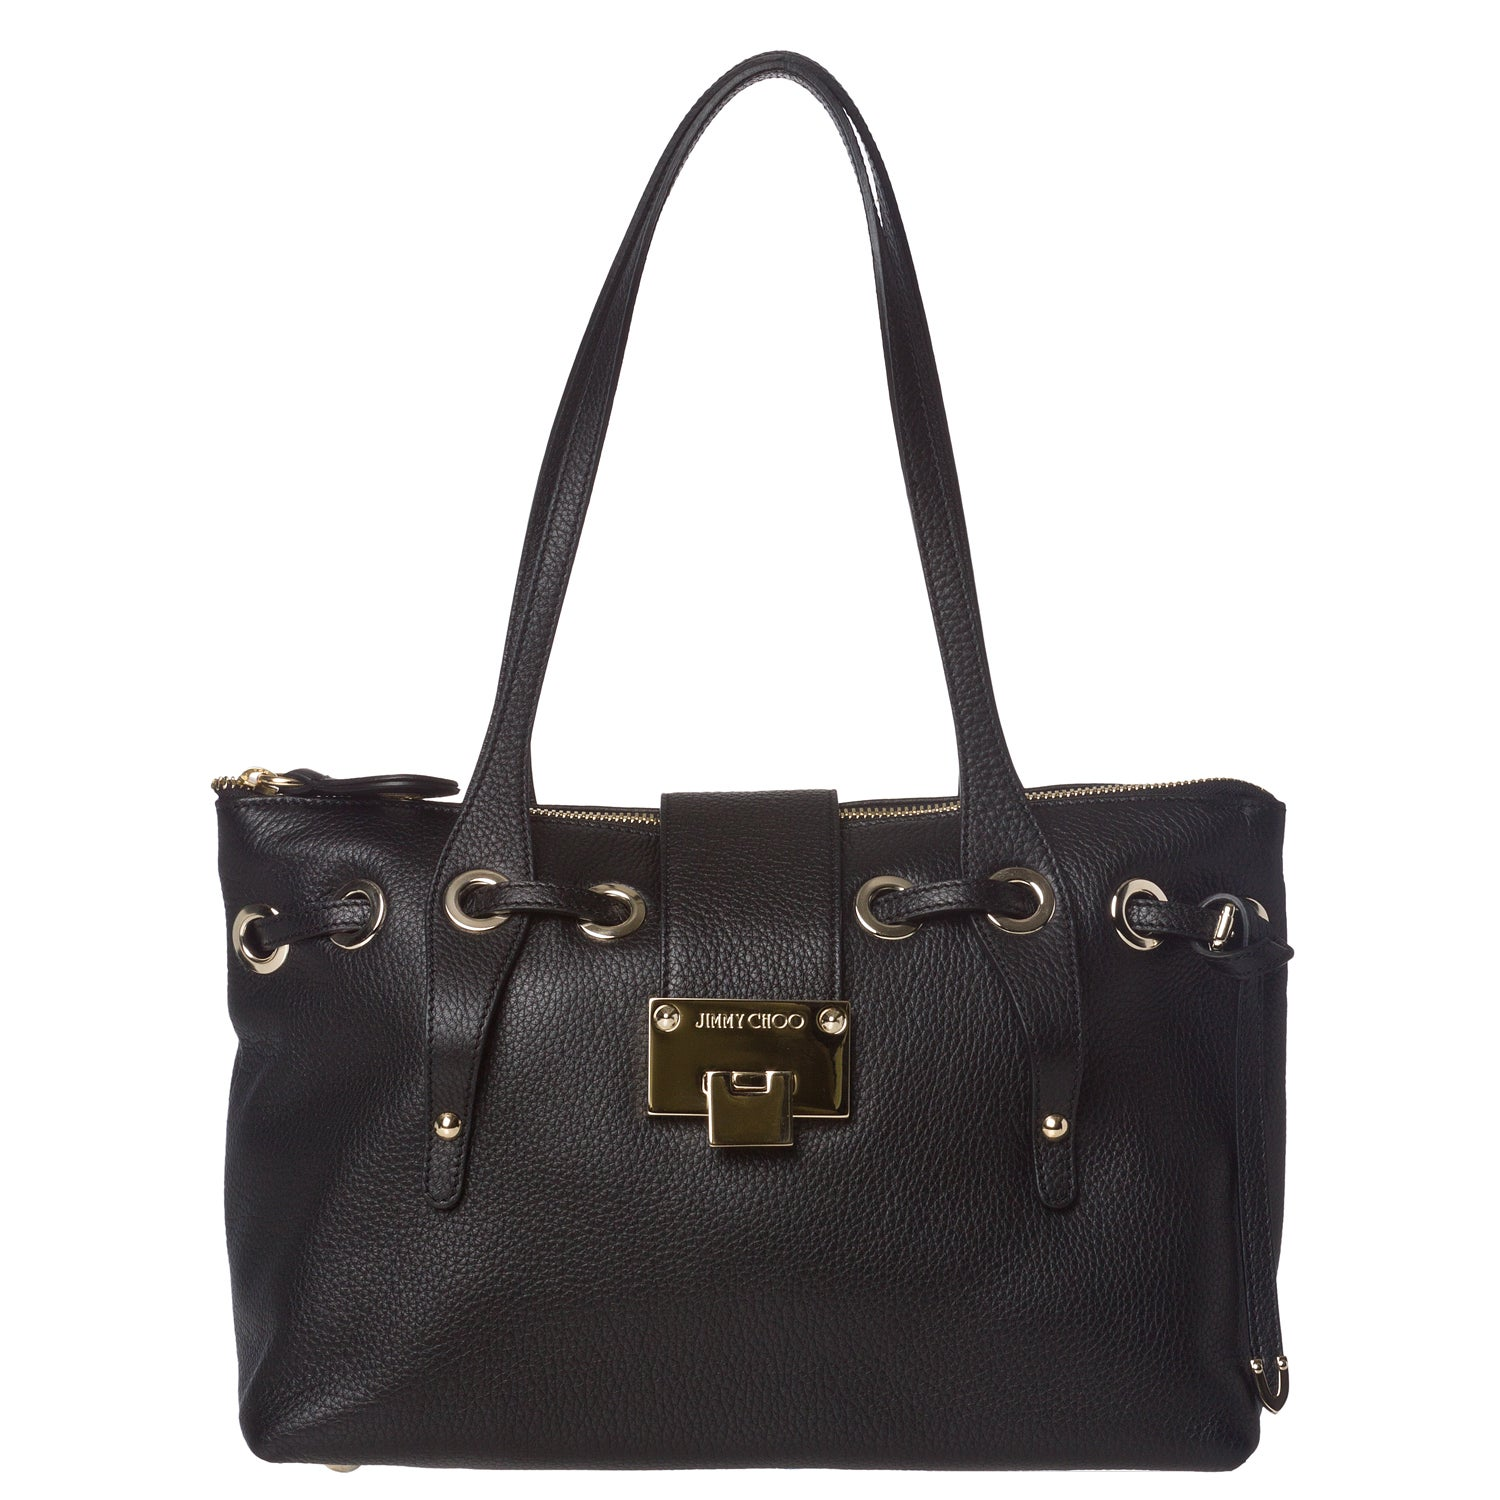 e56bd0ae86 Shop Jimmy Choo  247 RHEA S GRC  Small Shoulder Bag - Free Shipping Today -  Overstock.com - 6857178